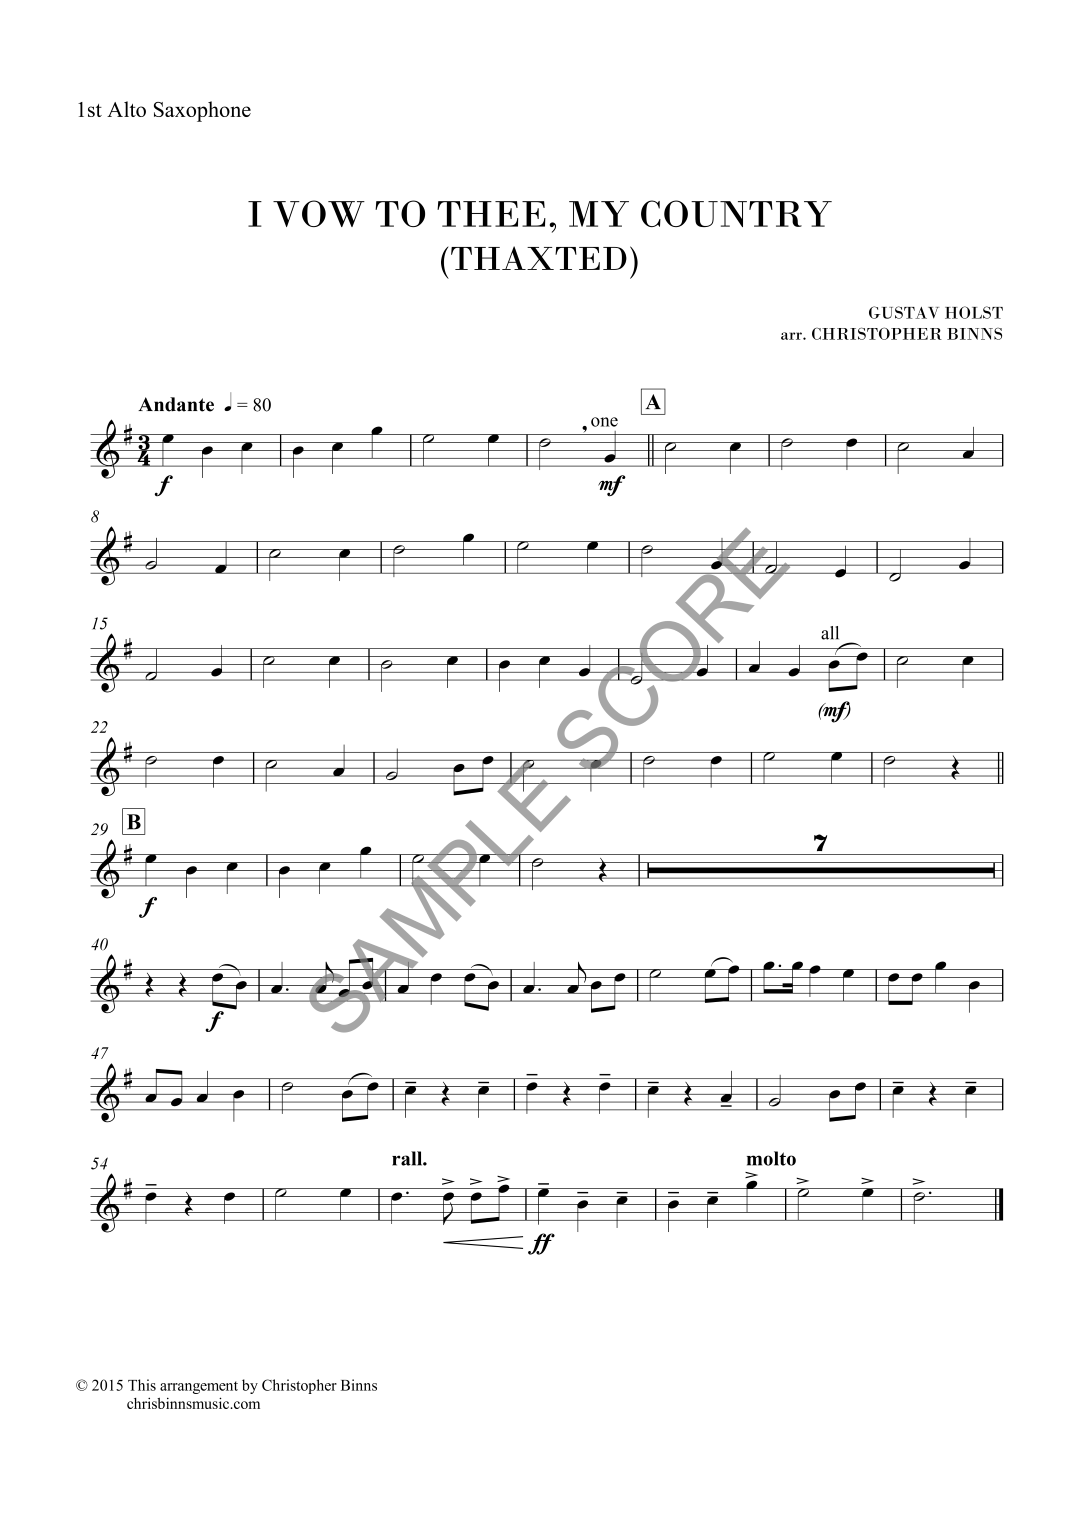 I Vow to Thee - 1st Alto Sax